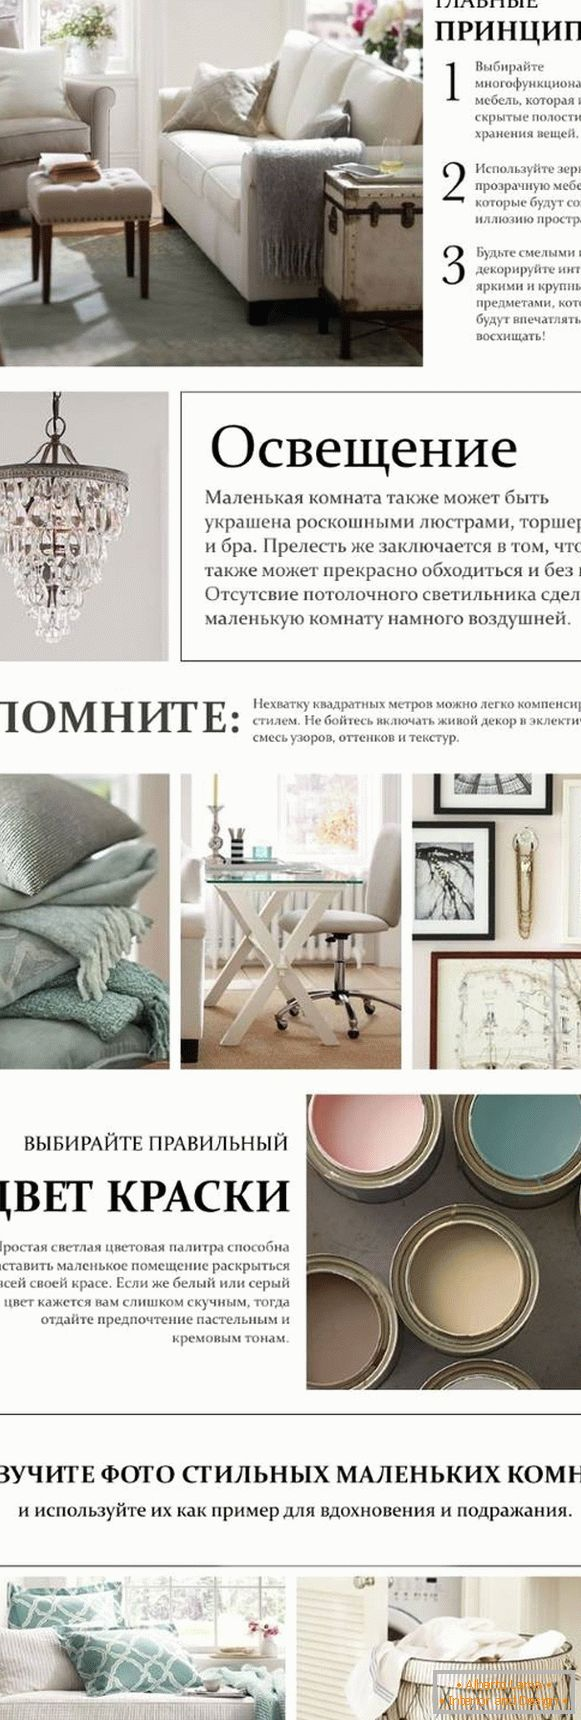 Infographics-decor-mici-camere